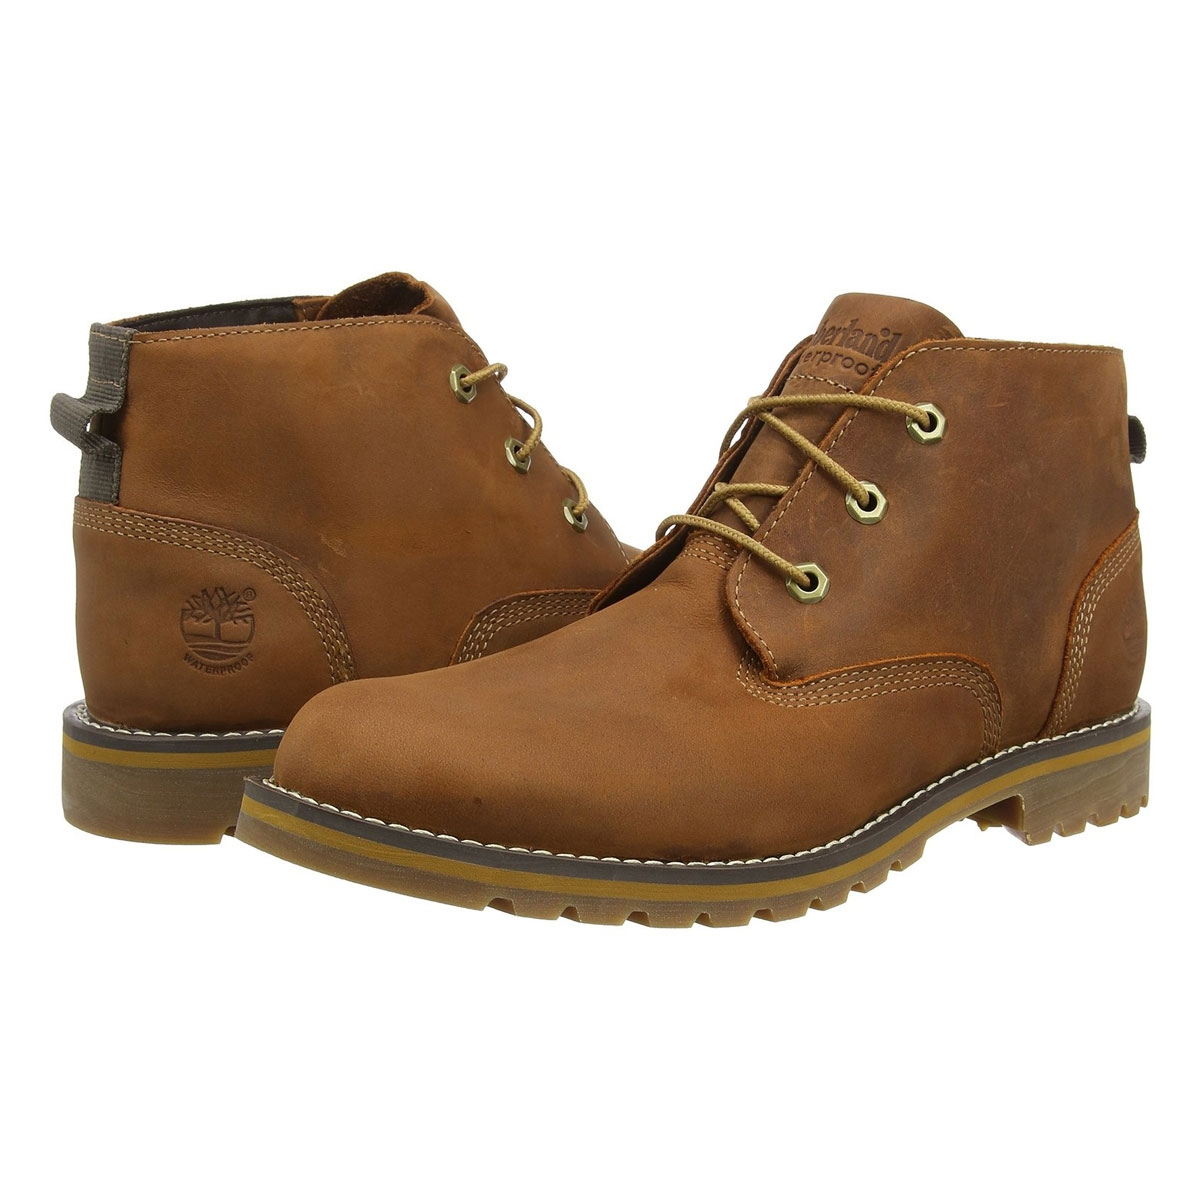 d6e79be0ca04 Image of Timberland Earthkeepers Larchmont WP Waterproof Chukka Boots (  Men s) -